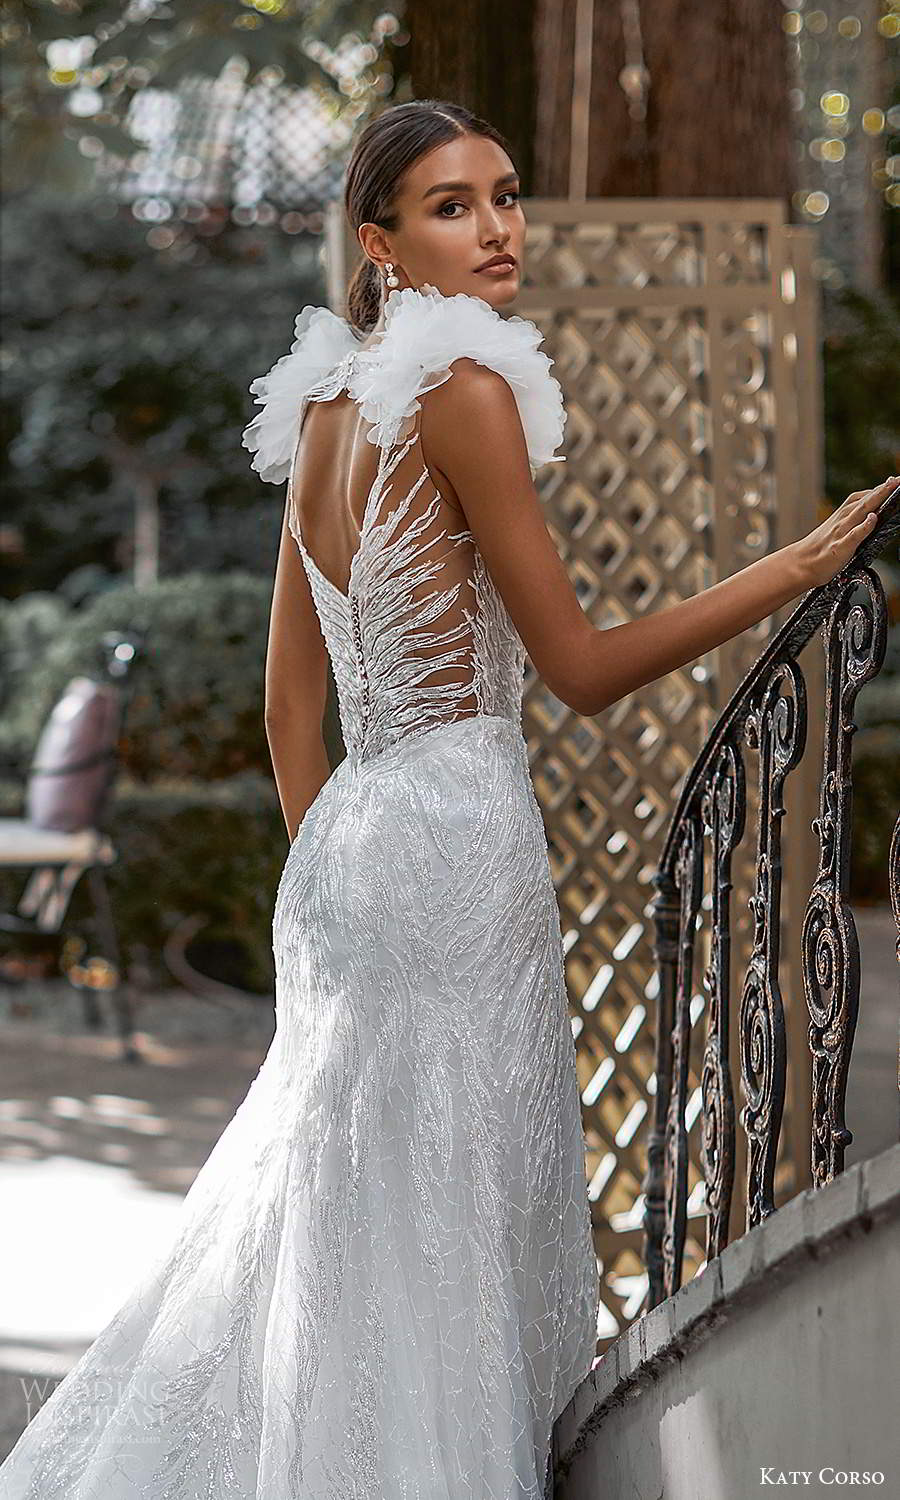 katy corso 2021 bridal sleeveless ruffle straps plunging sweetheart neckline fully embellished fit flare trumpet a line wedding dress chapel train (12) zbv